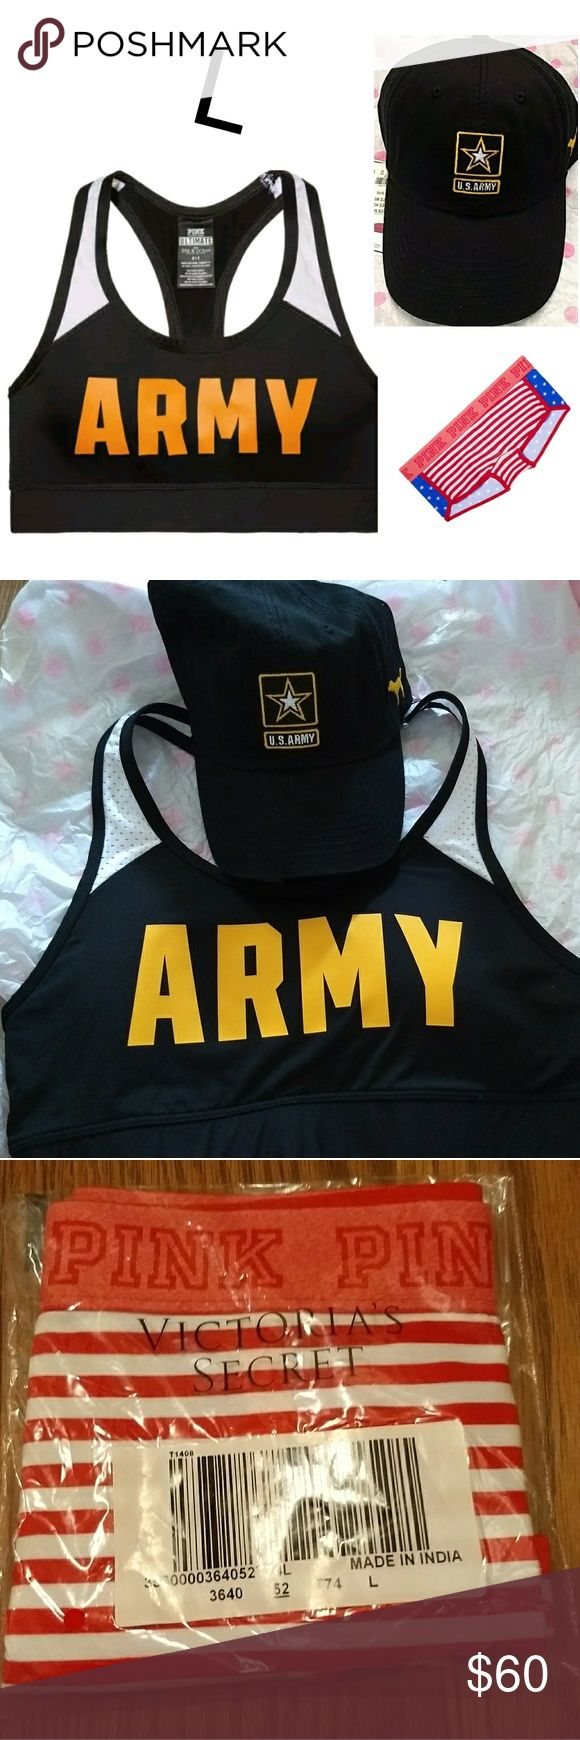 VS PINK US ARMY Hat Sport Bra Americana Panty L New with tags / original VS warehouse packaging. From a smoke-free and pet-free home. Price is firm. I'm sorry I don't trade.   VS PINK US Army Adjustable Baseball Hat- OS, Embroidered VS PINK Logo Boyshort- Americana Print, L VS PINK US Army Sport Bra - L (36C, 36D) PINK Victoria's Secret Other